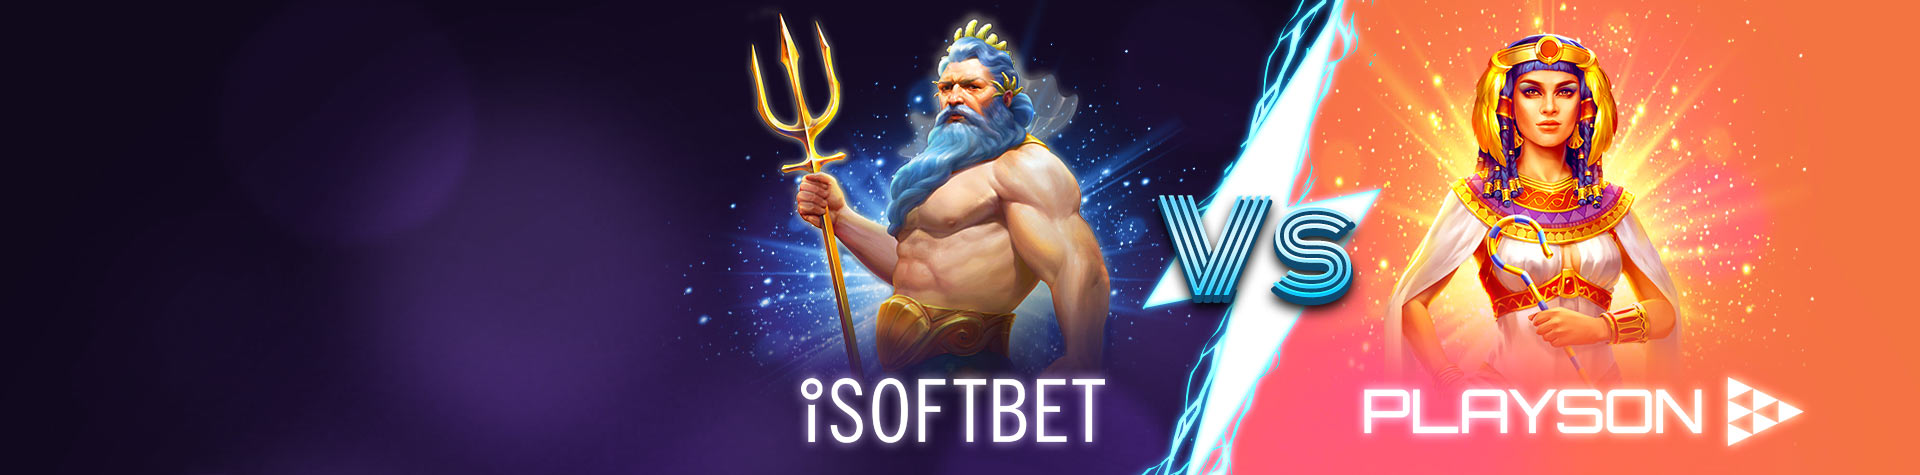 IsoftbetPlayson Tournament BG 1920x475